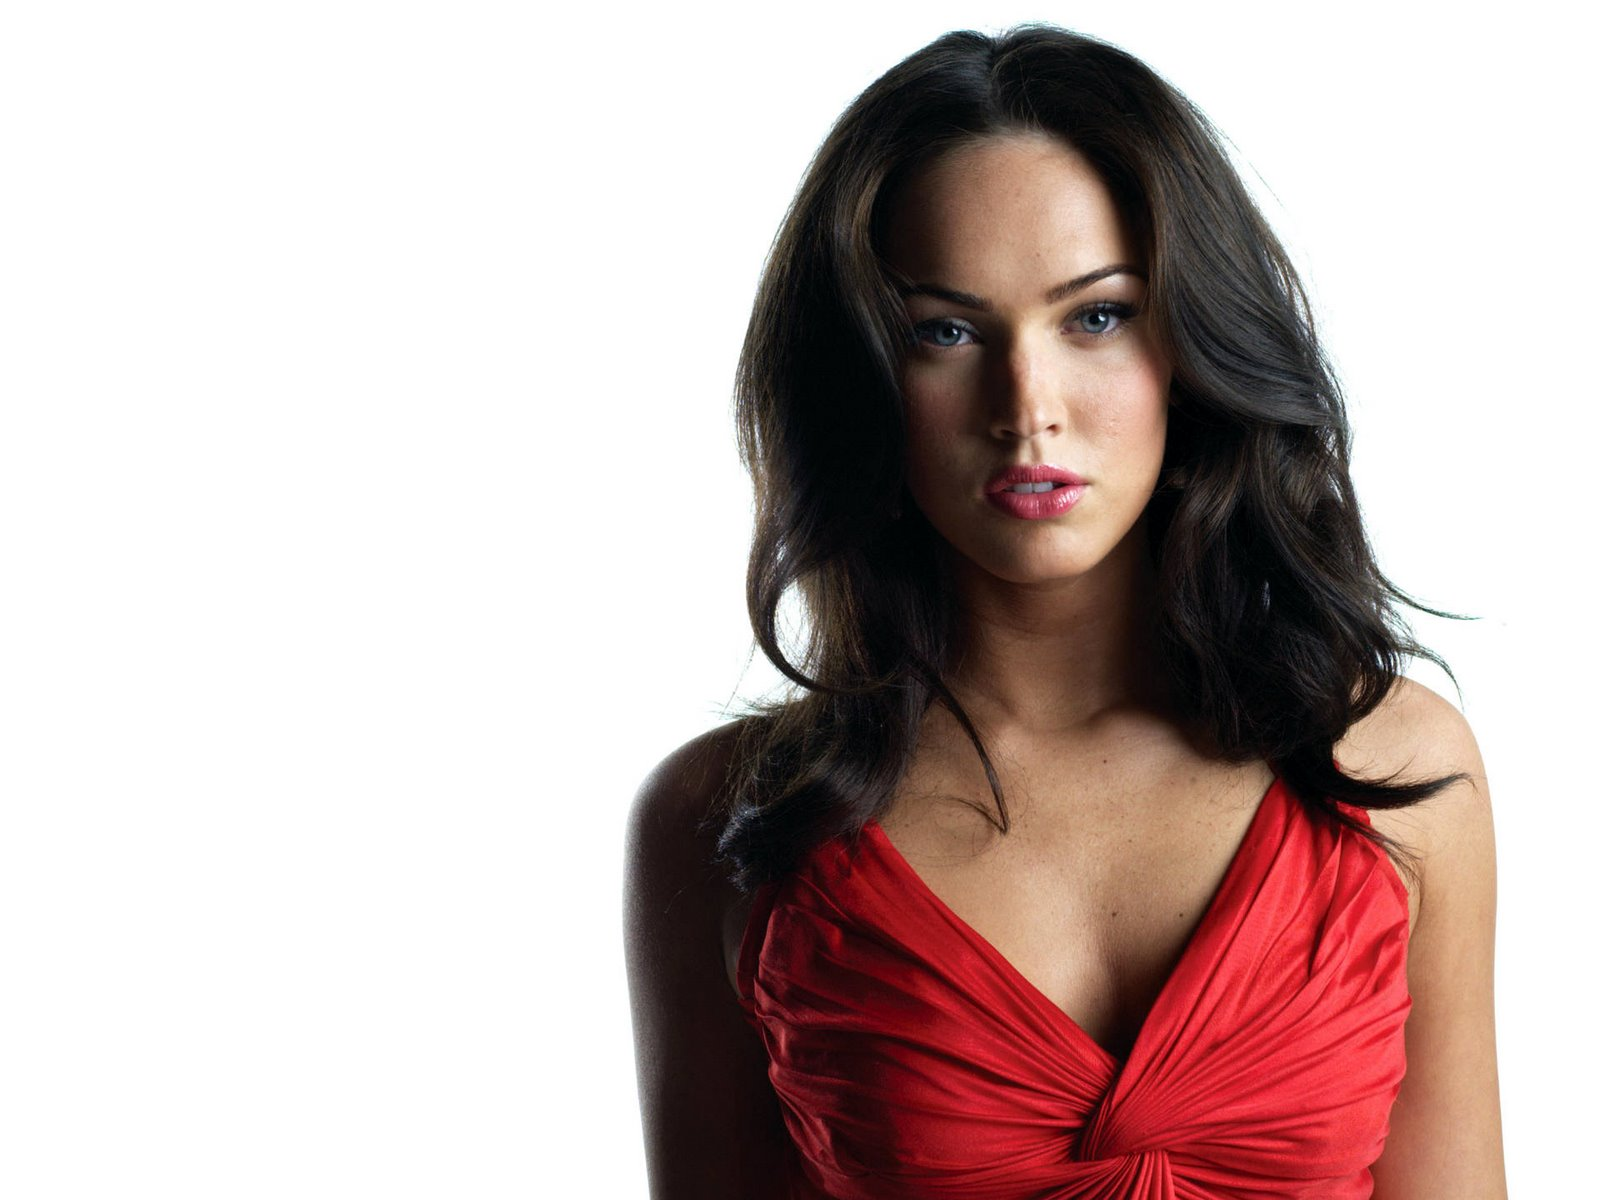 Online Wallpapers Shop Megan Fox Wallpapers: Best HD Desktop Wallpaper